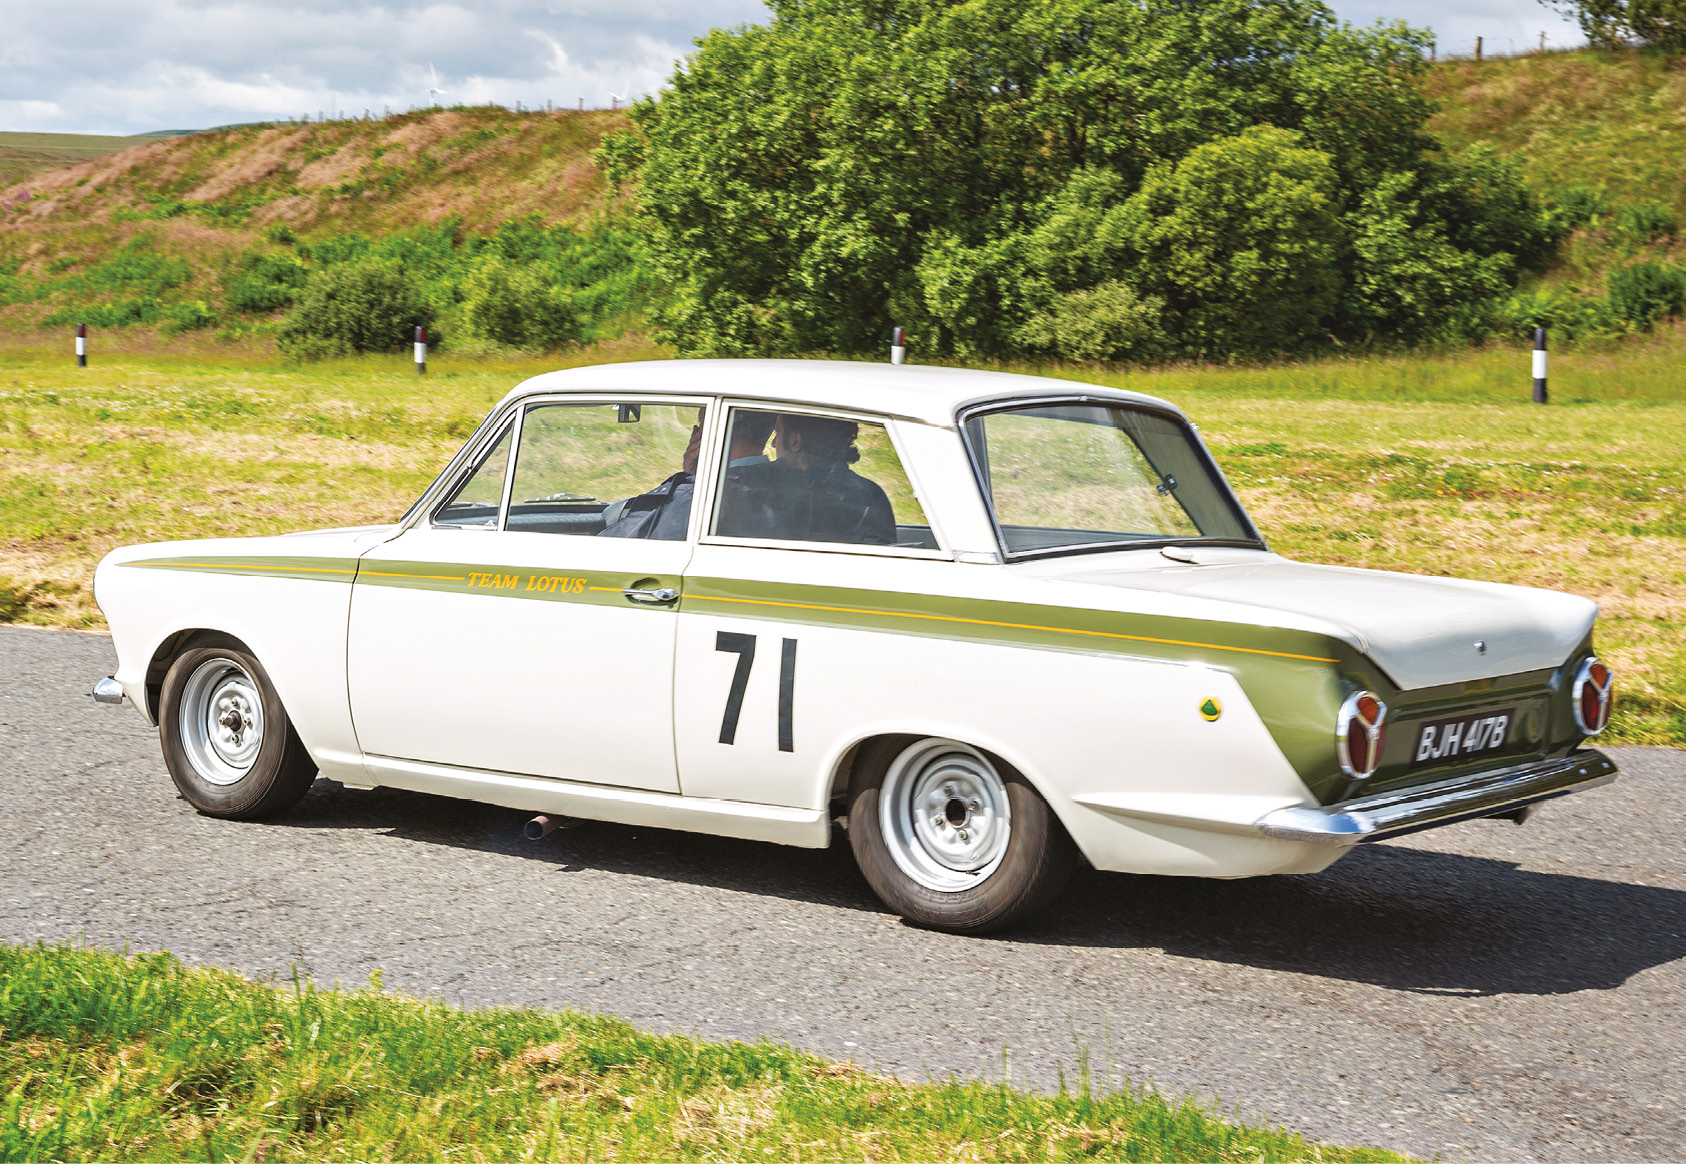 Clark's Cortina in a more tranquil setting, 55 years later